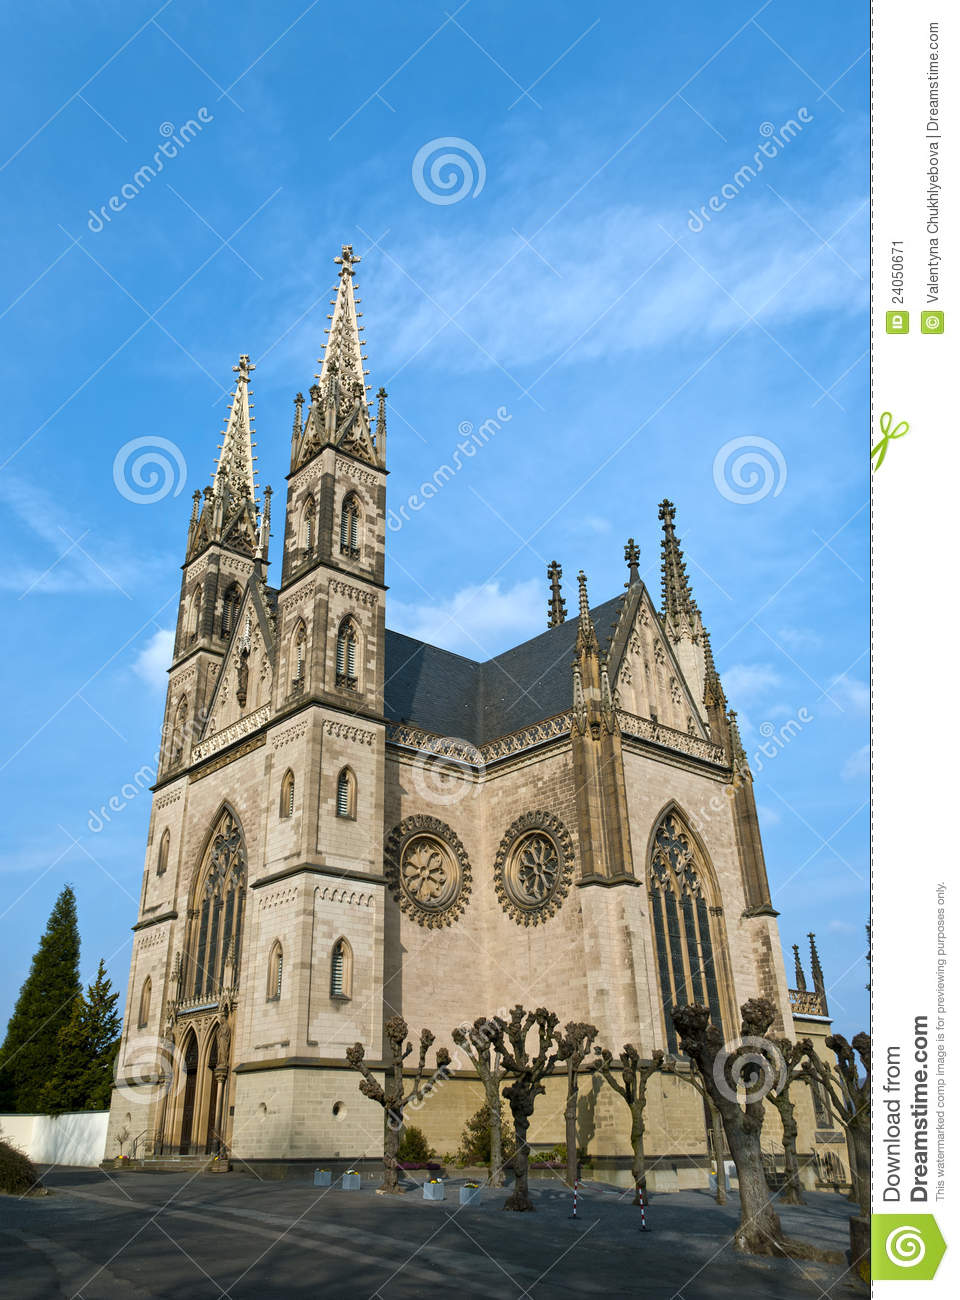 how to say church in german